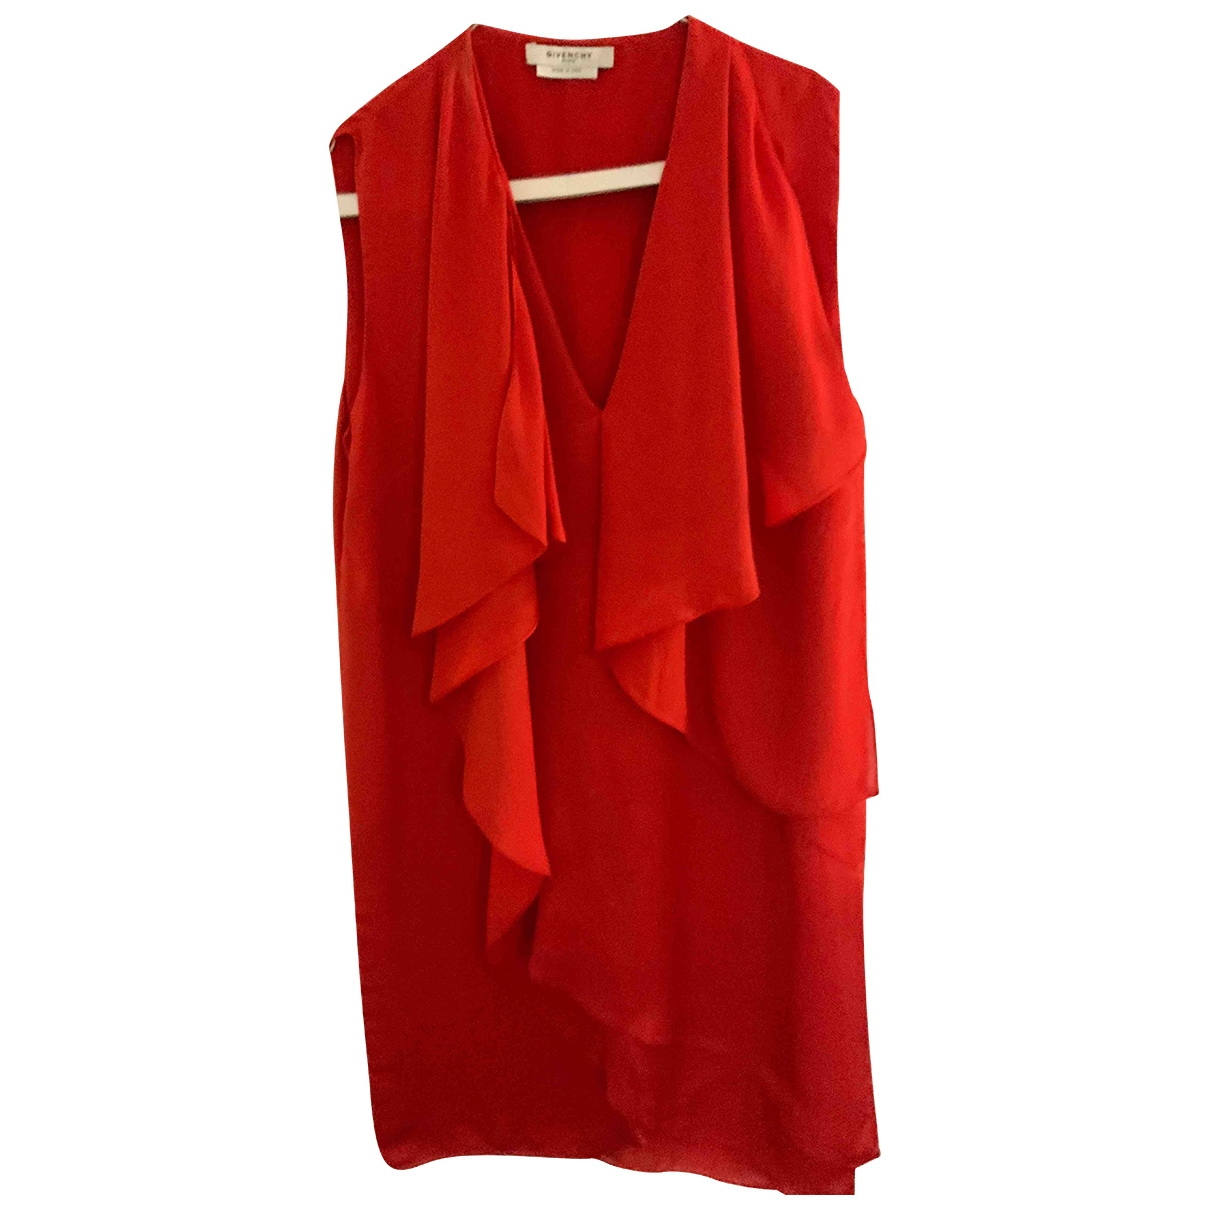 Givenchy \N Kleid in  Rot Polyester